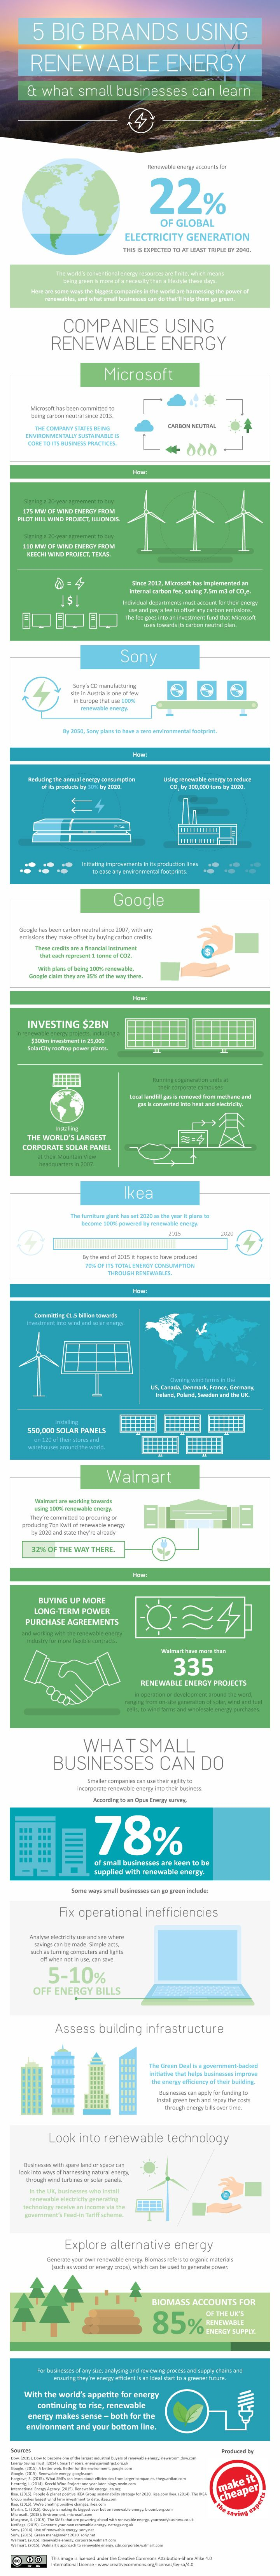 6 Big Brands Using Renewable Energy and What Small Businesses Can Learn #infographic #Business #Energy